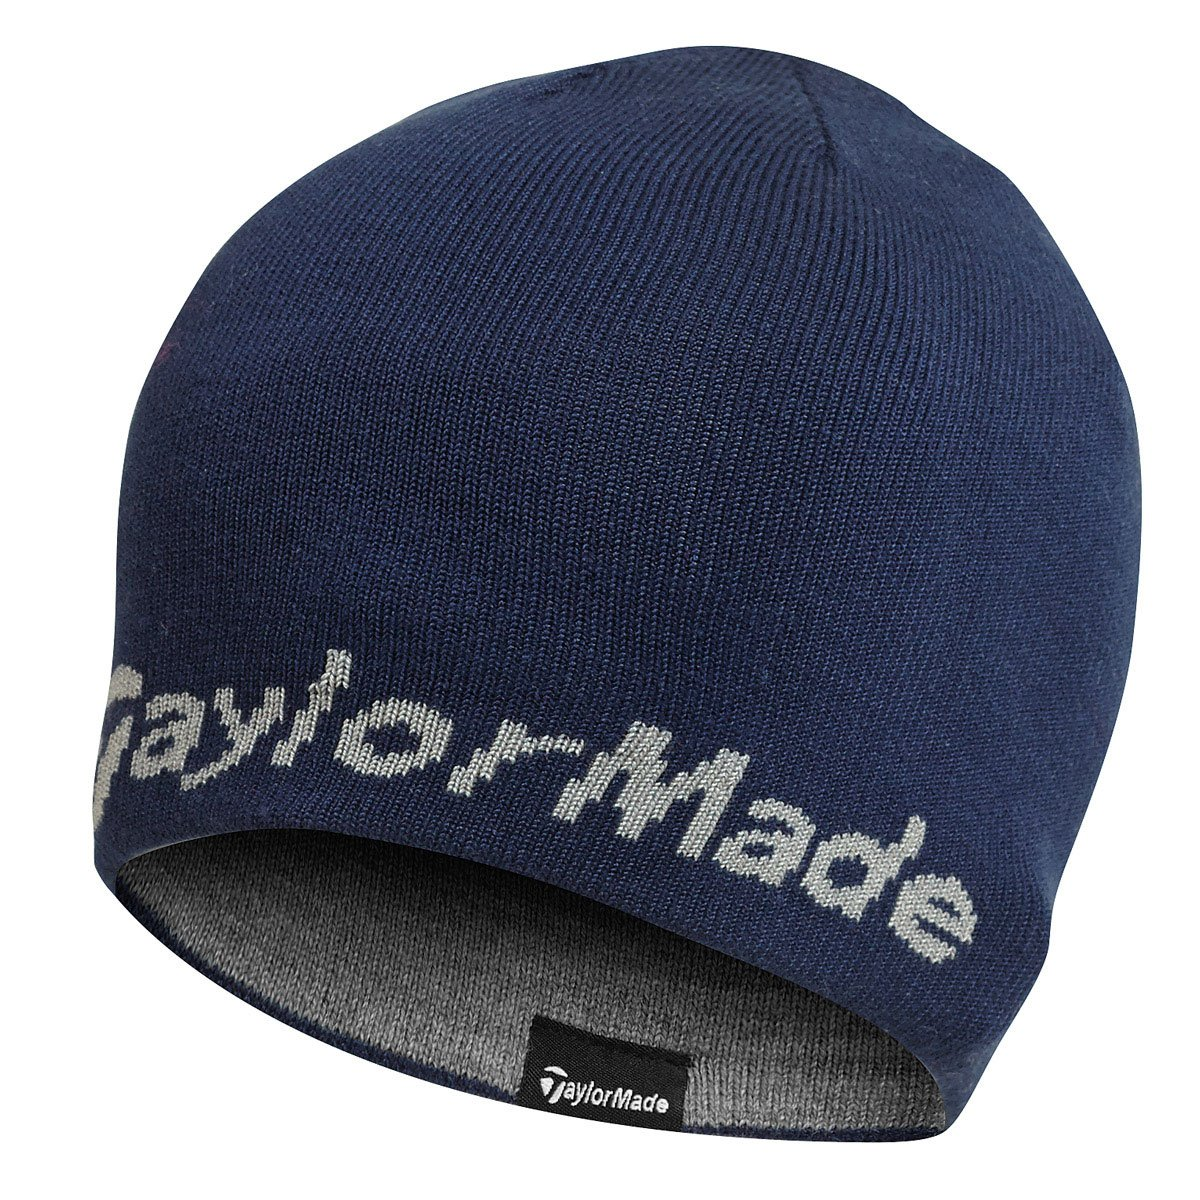 c07c2cc9a TaylorMade Reversible Thermal Golf Beanie Double Knitted Mens Hat